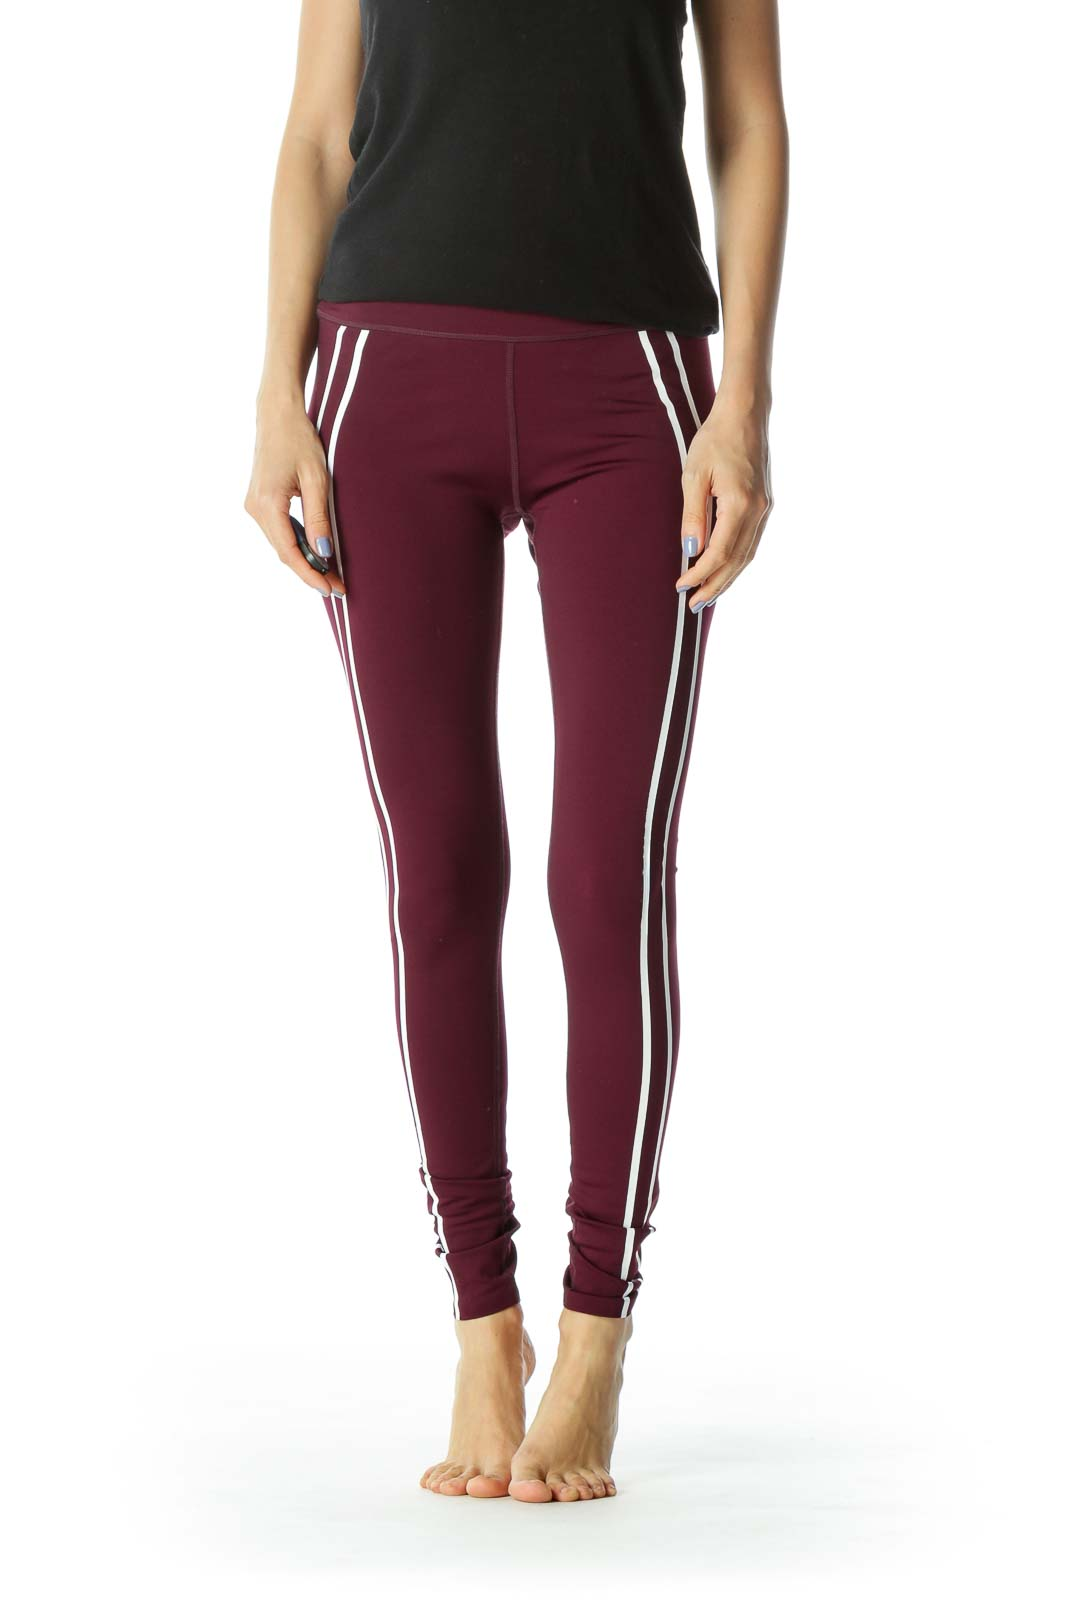 Burgundy/White Side-Stripes Activewear Leggings